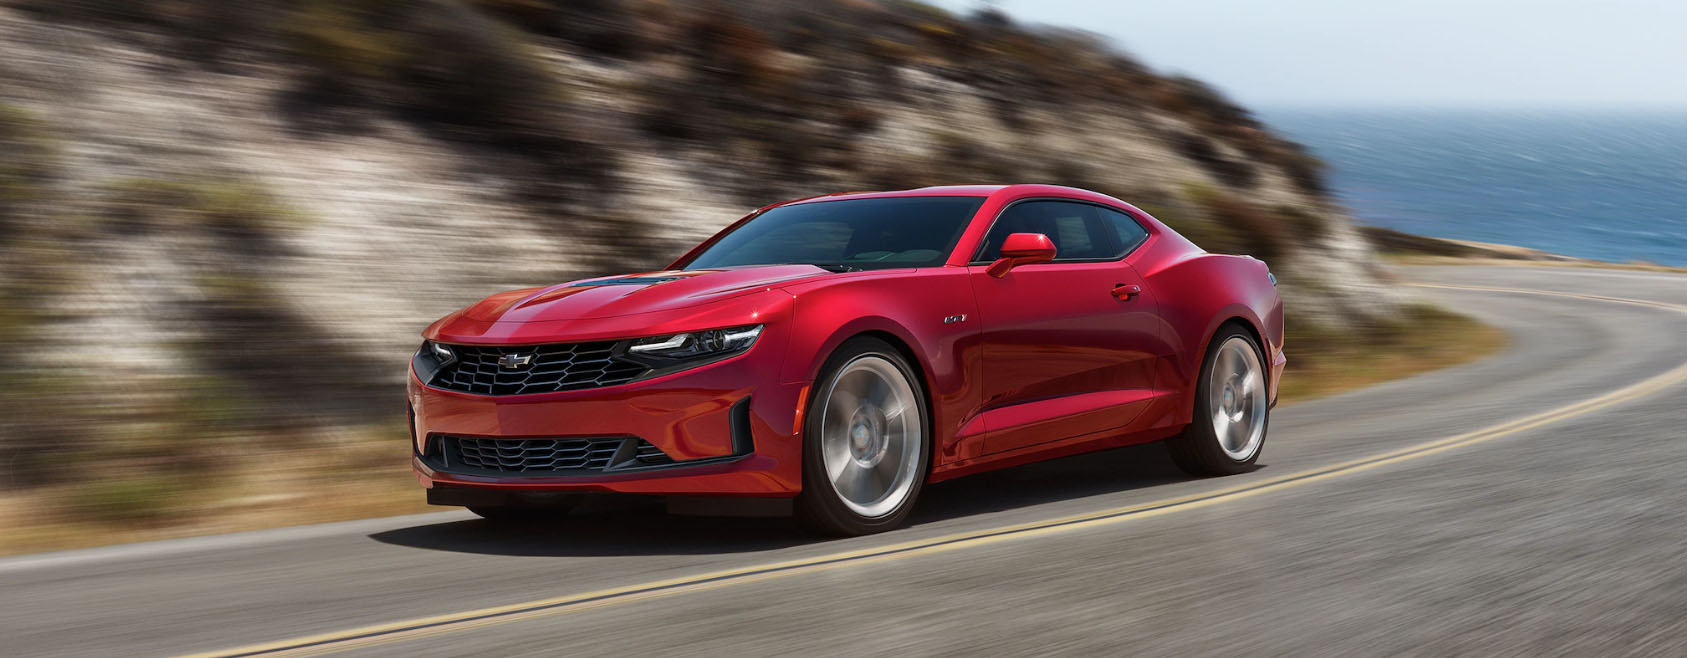 2020 Chevrolet Camaro Safety Main Img